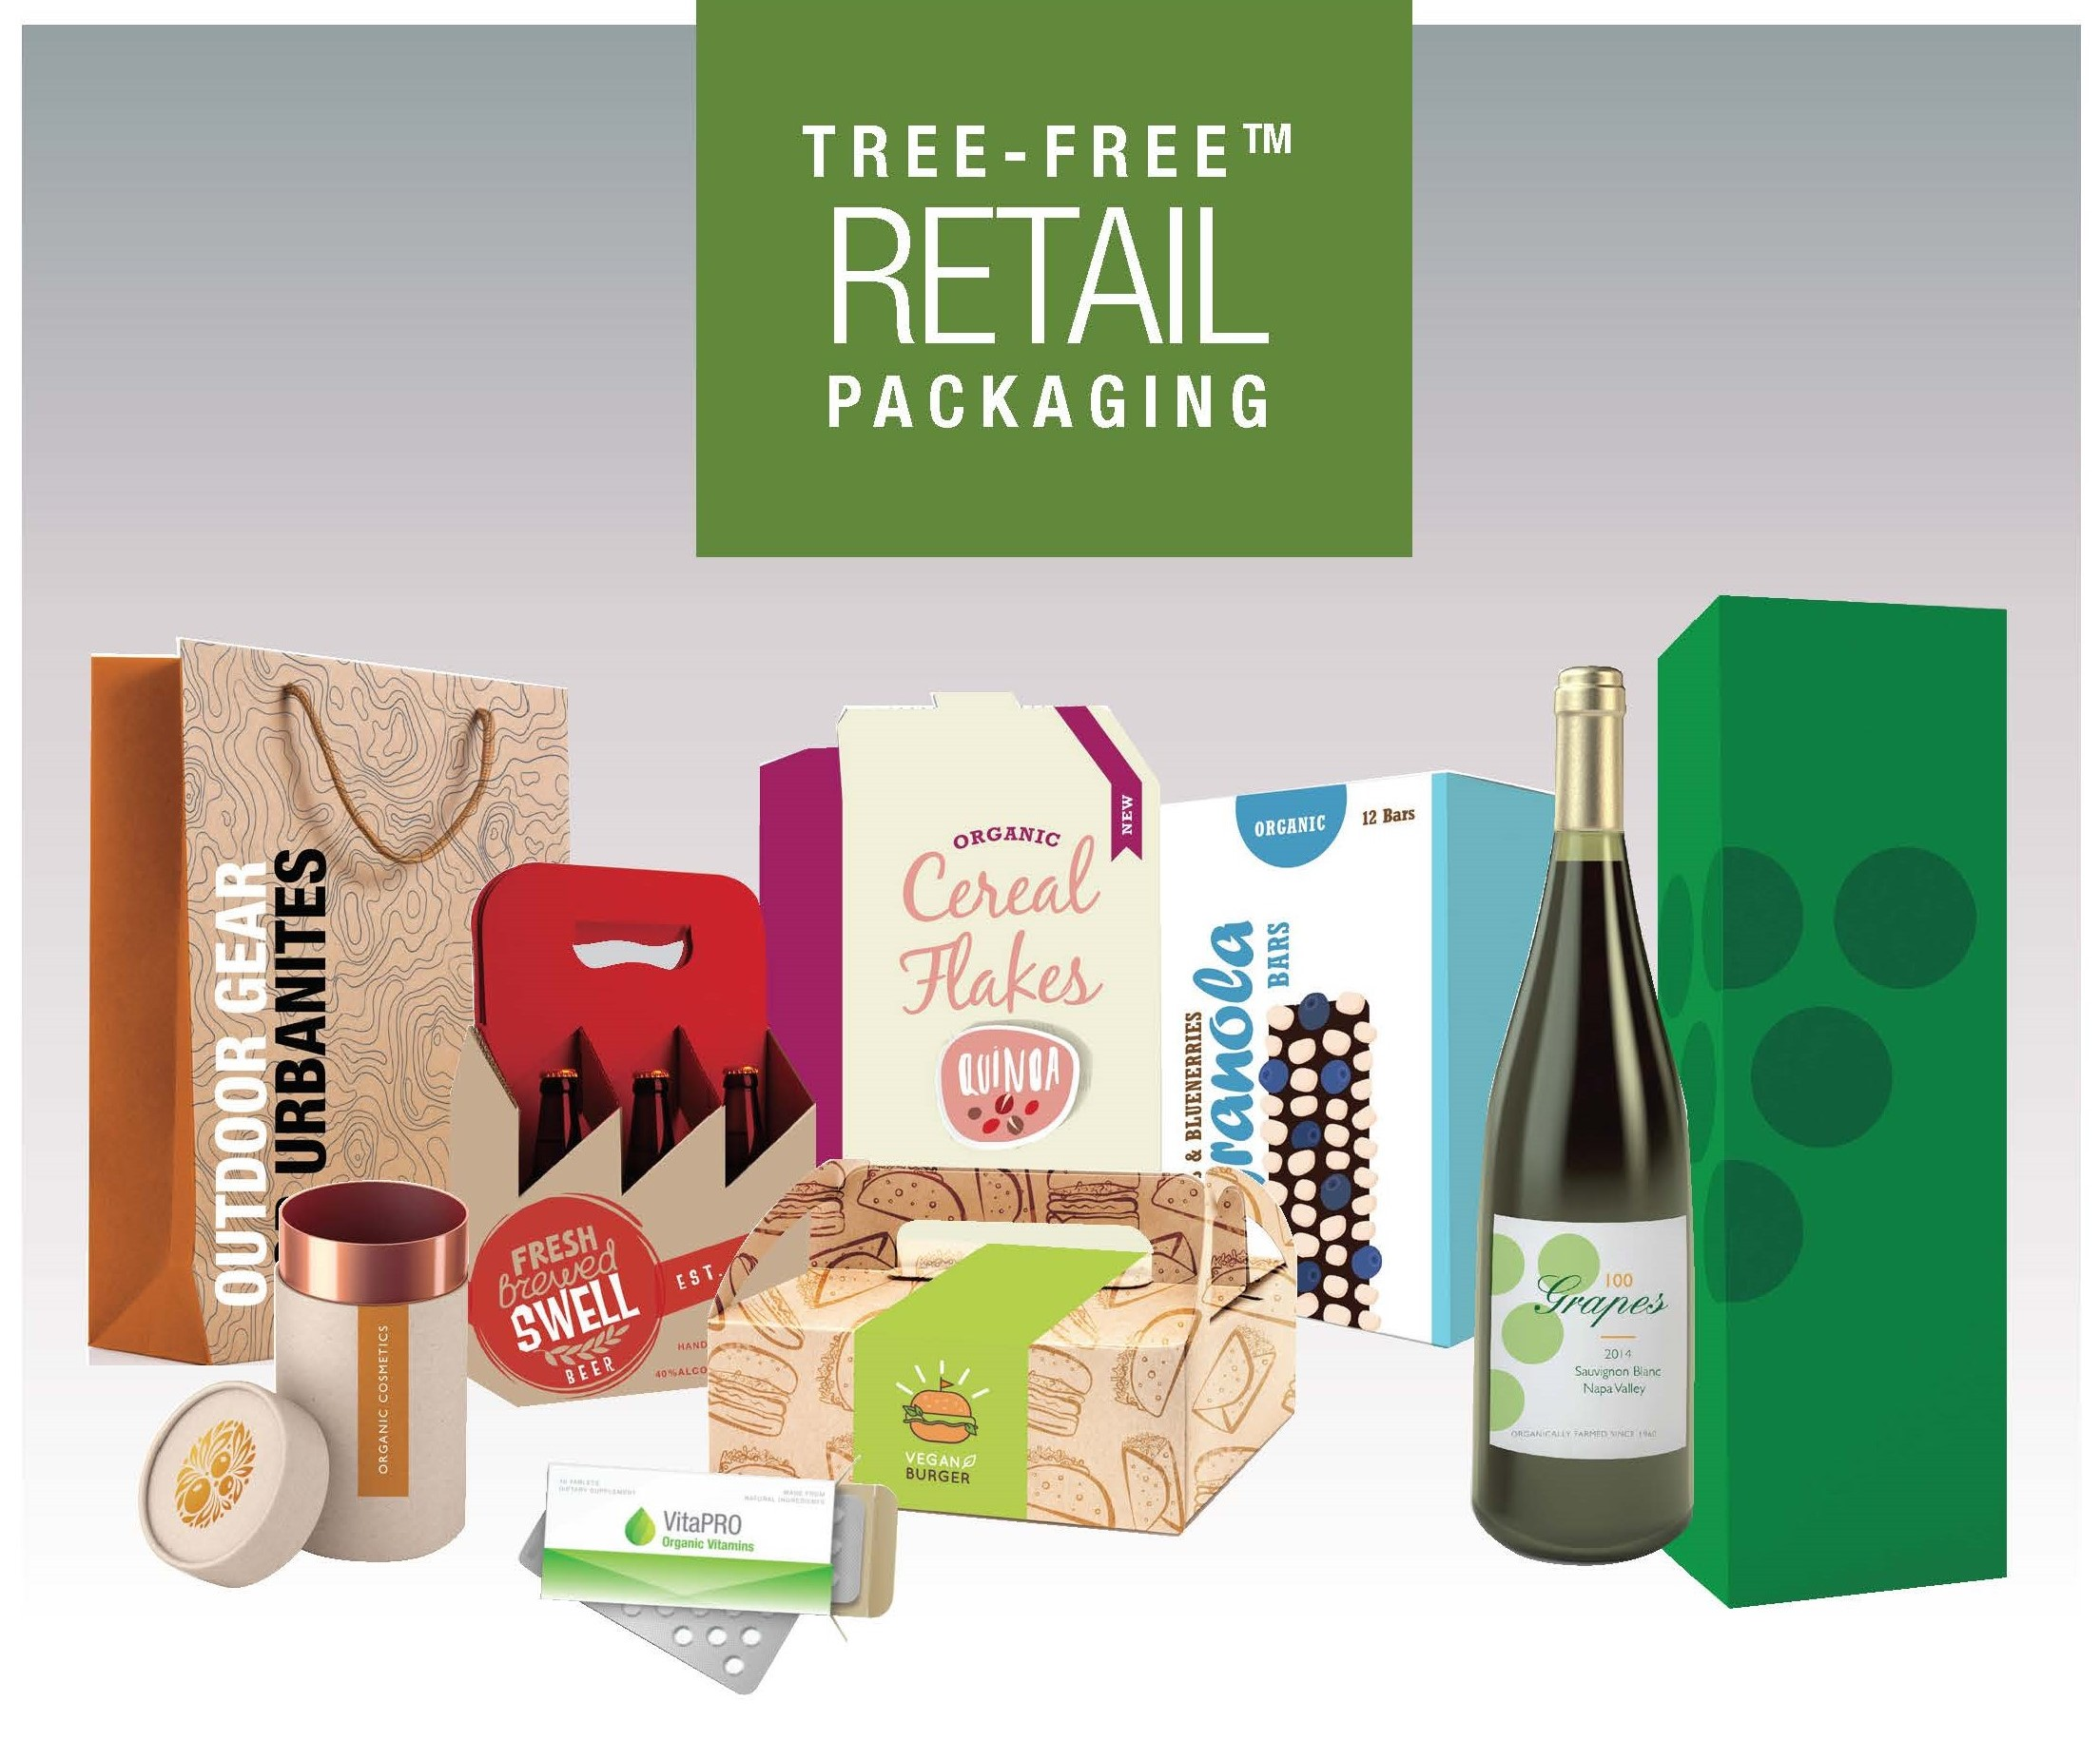 Tree-Free Packaging